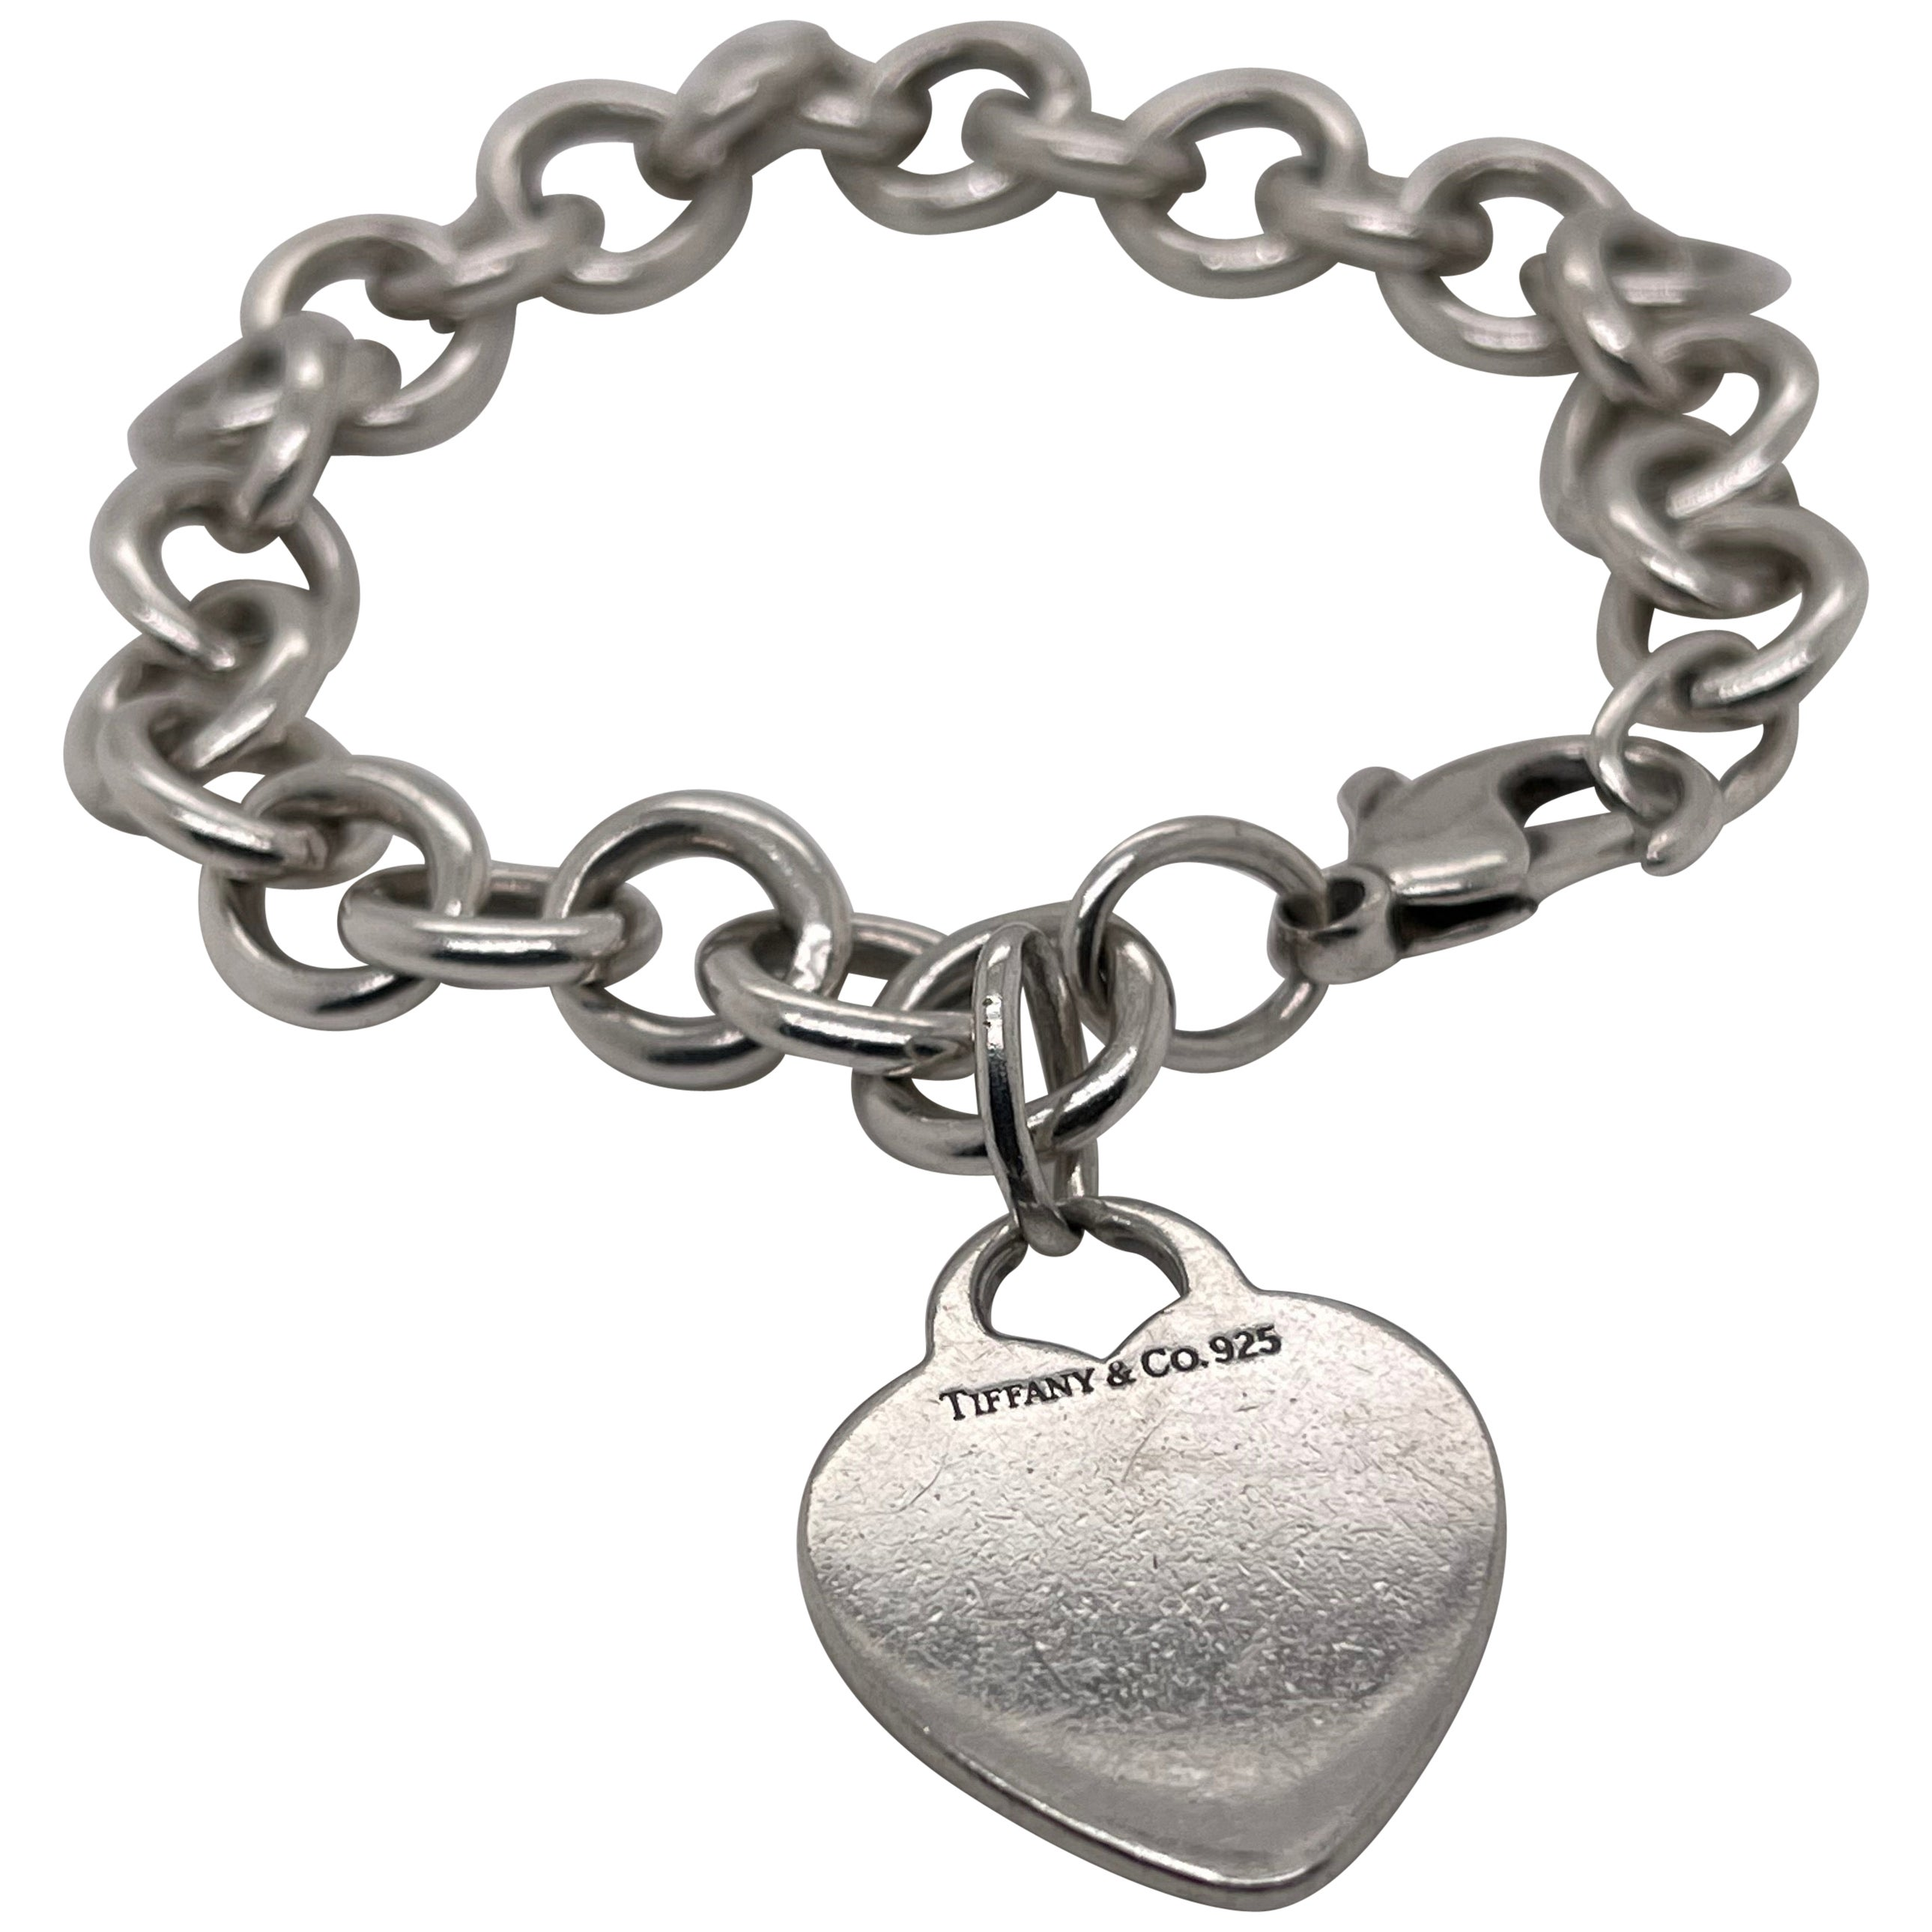 Tiffany & Co. Sterling Silver Dog Chain Link Bracelet and Heart Pendant